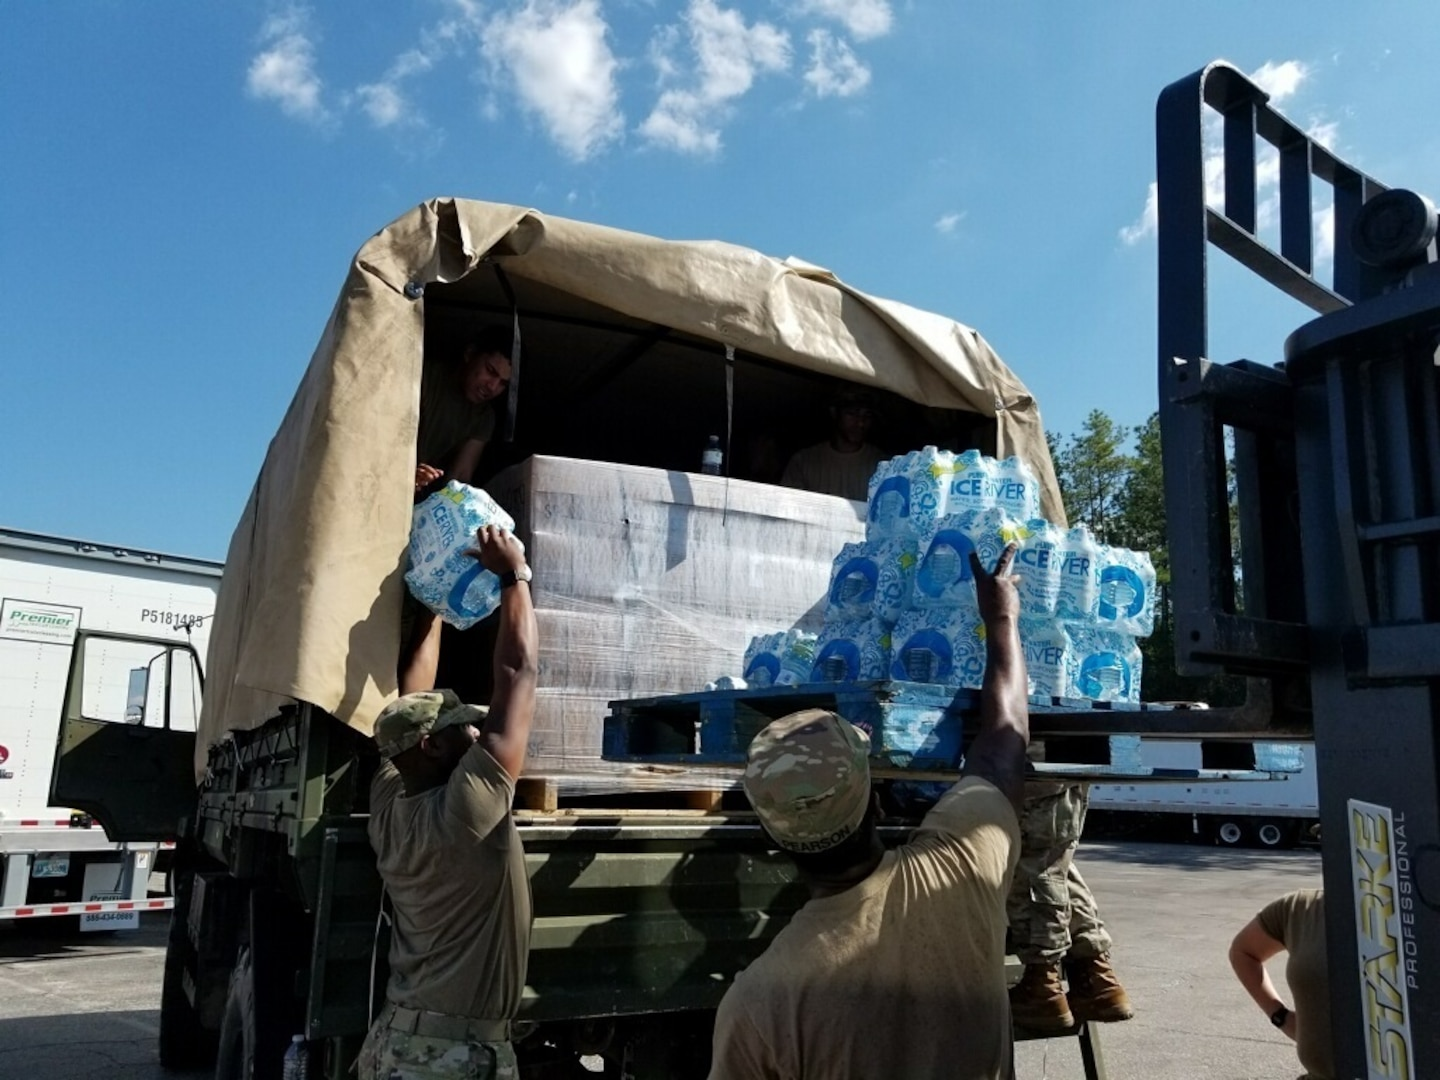 DLA Troop Support provides food, generators, other materials for Hurricane Florence relief efforts